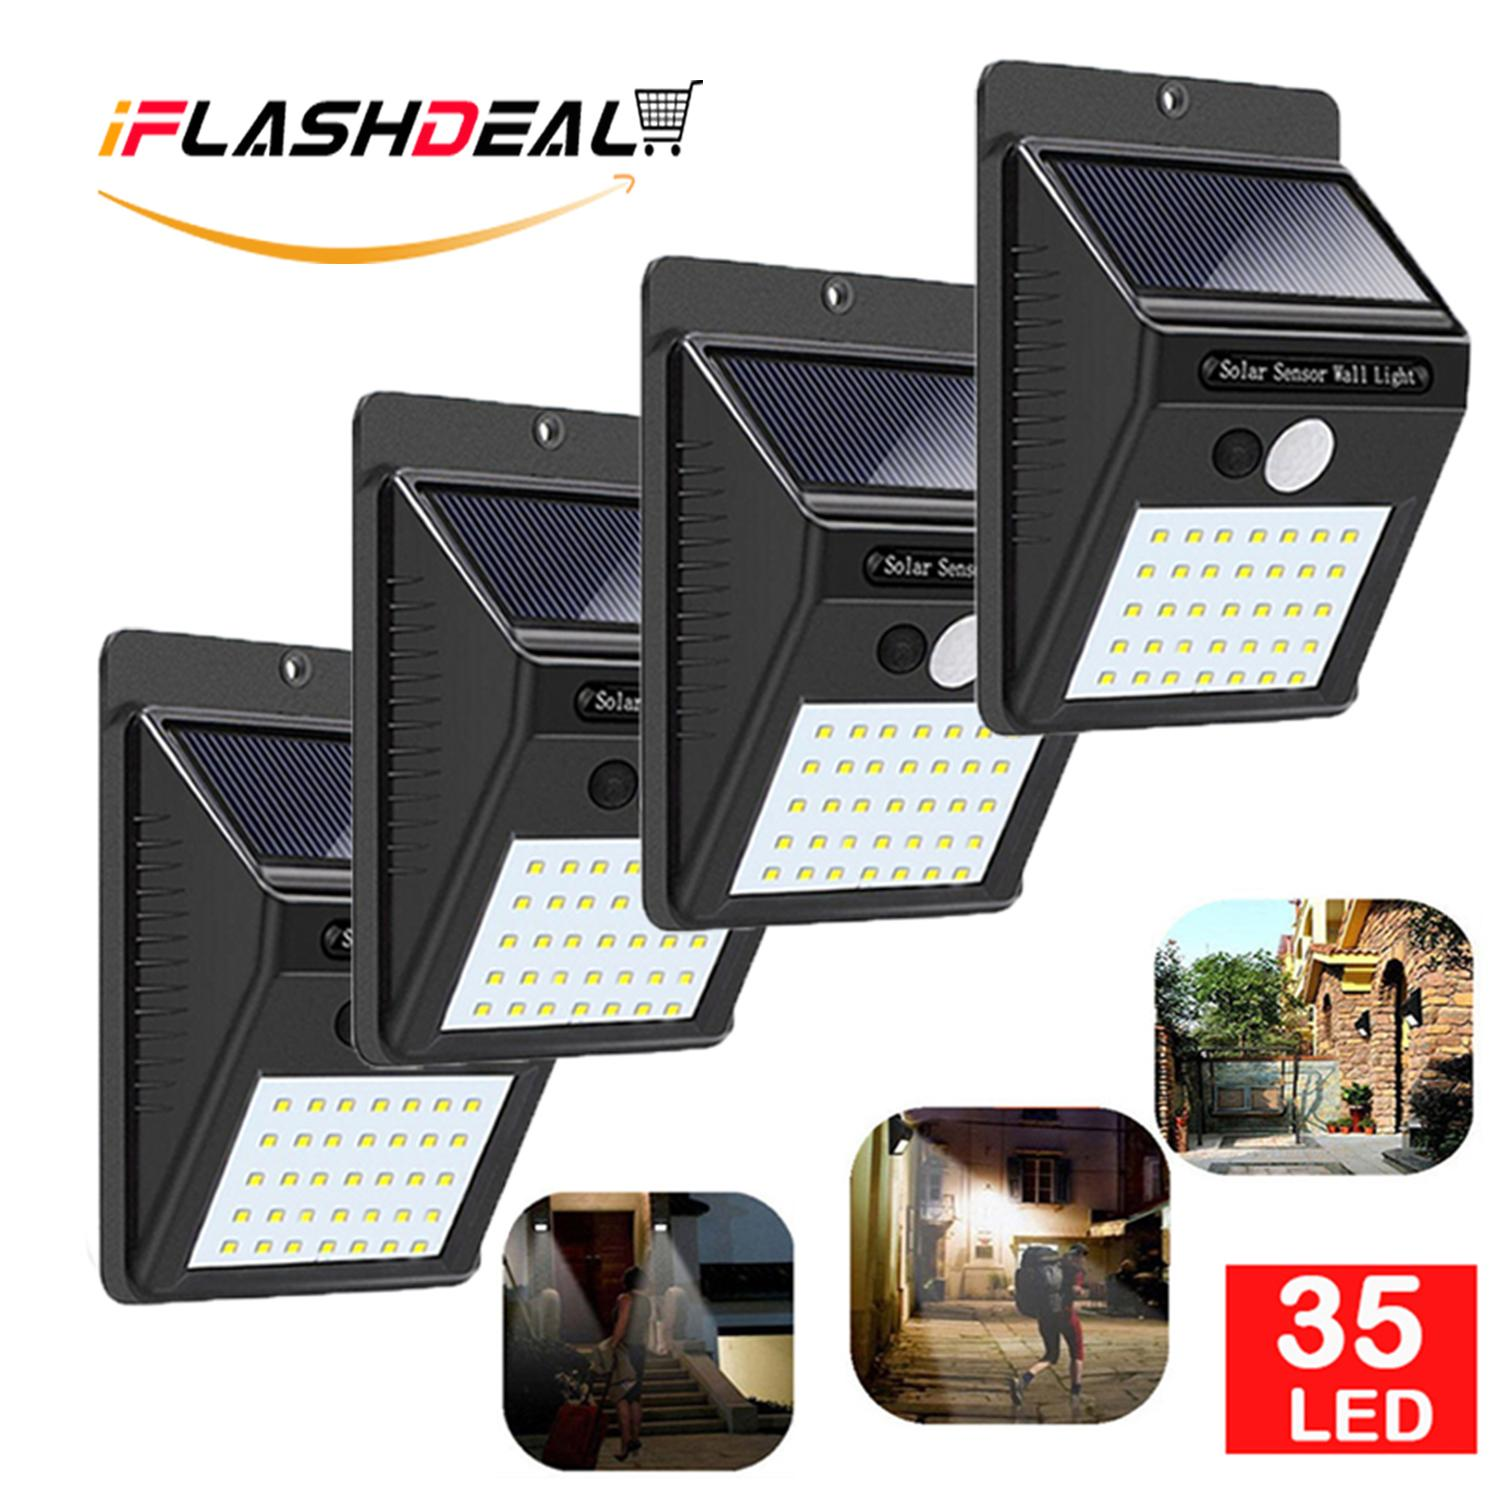 iFlashDeal 35 LED Solar Powered Wall Light Outdoor Lighting Waterproof Wall Lamp Motion Sensor Wireless Security Lights for Driveway Patio Garden Path 【4 Pack】